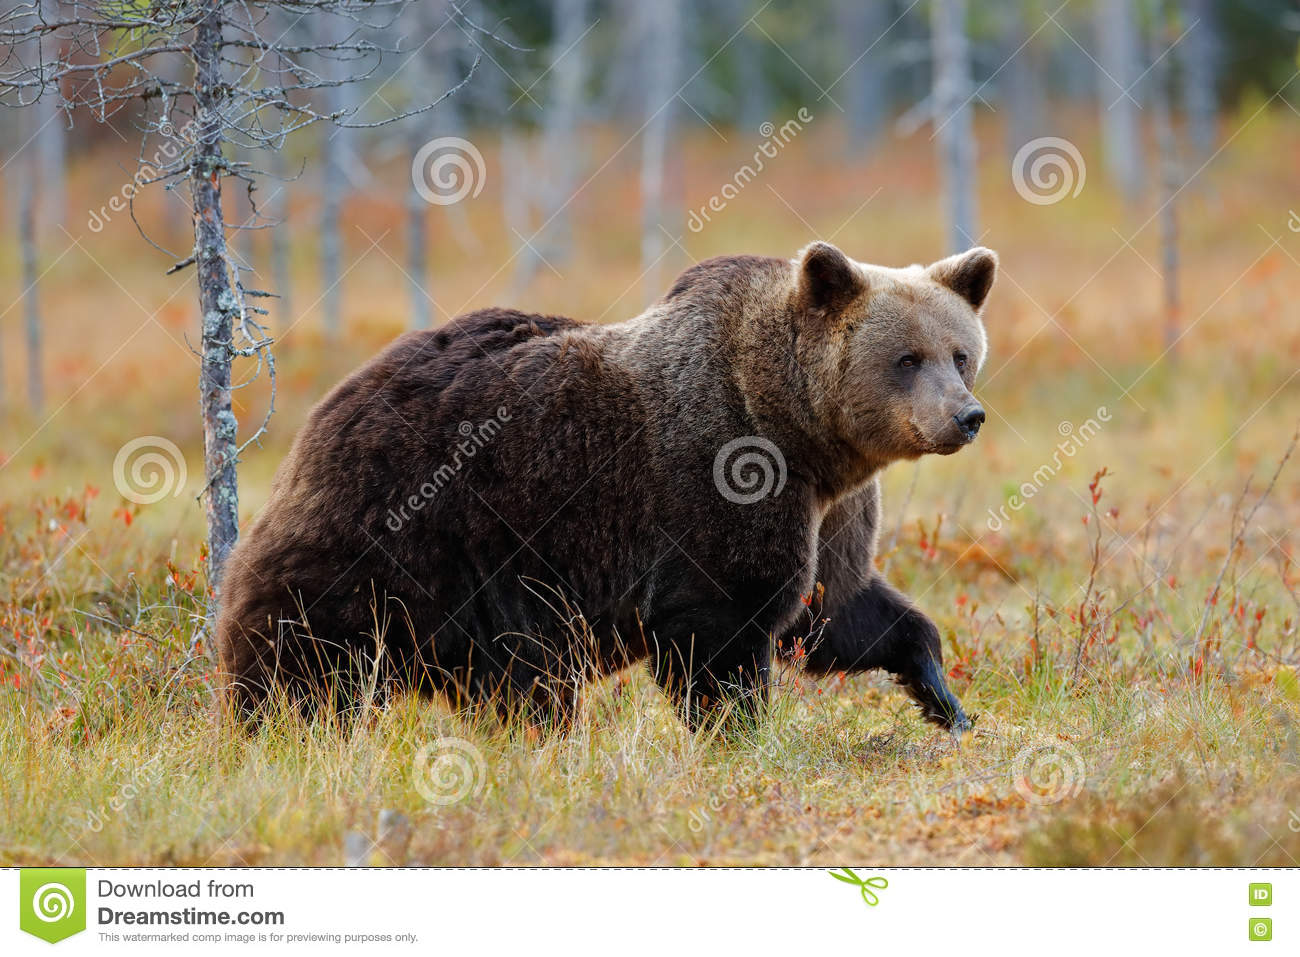 Beautiful big brown bear walking around lake with autumn colours. Dangerous animal in nature forest and meadow habitat. Wildlife